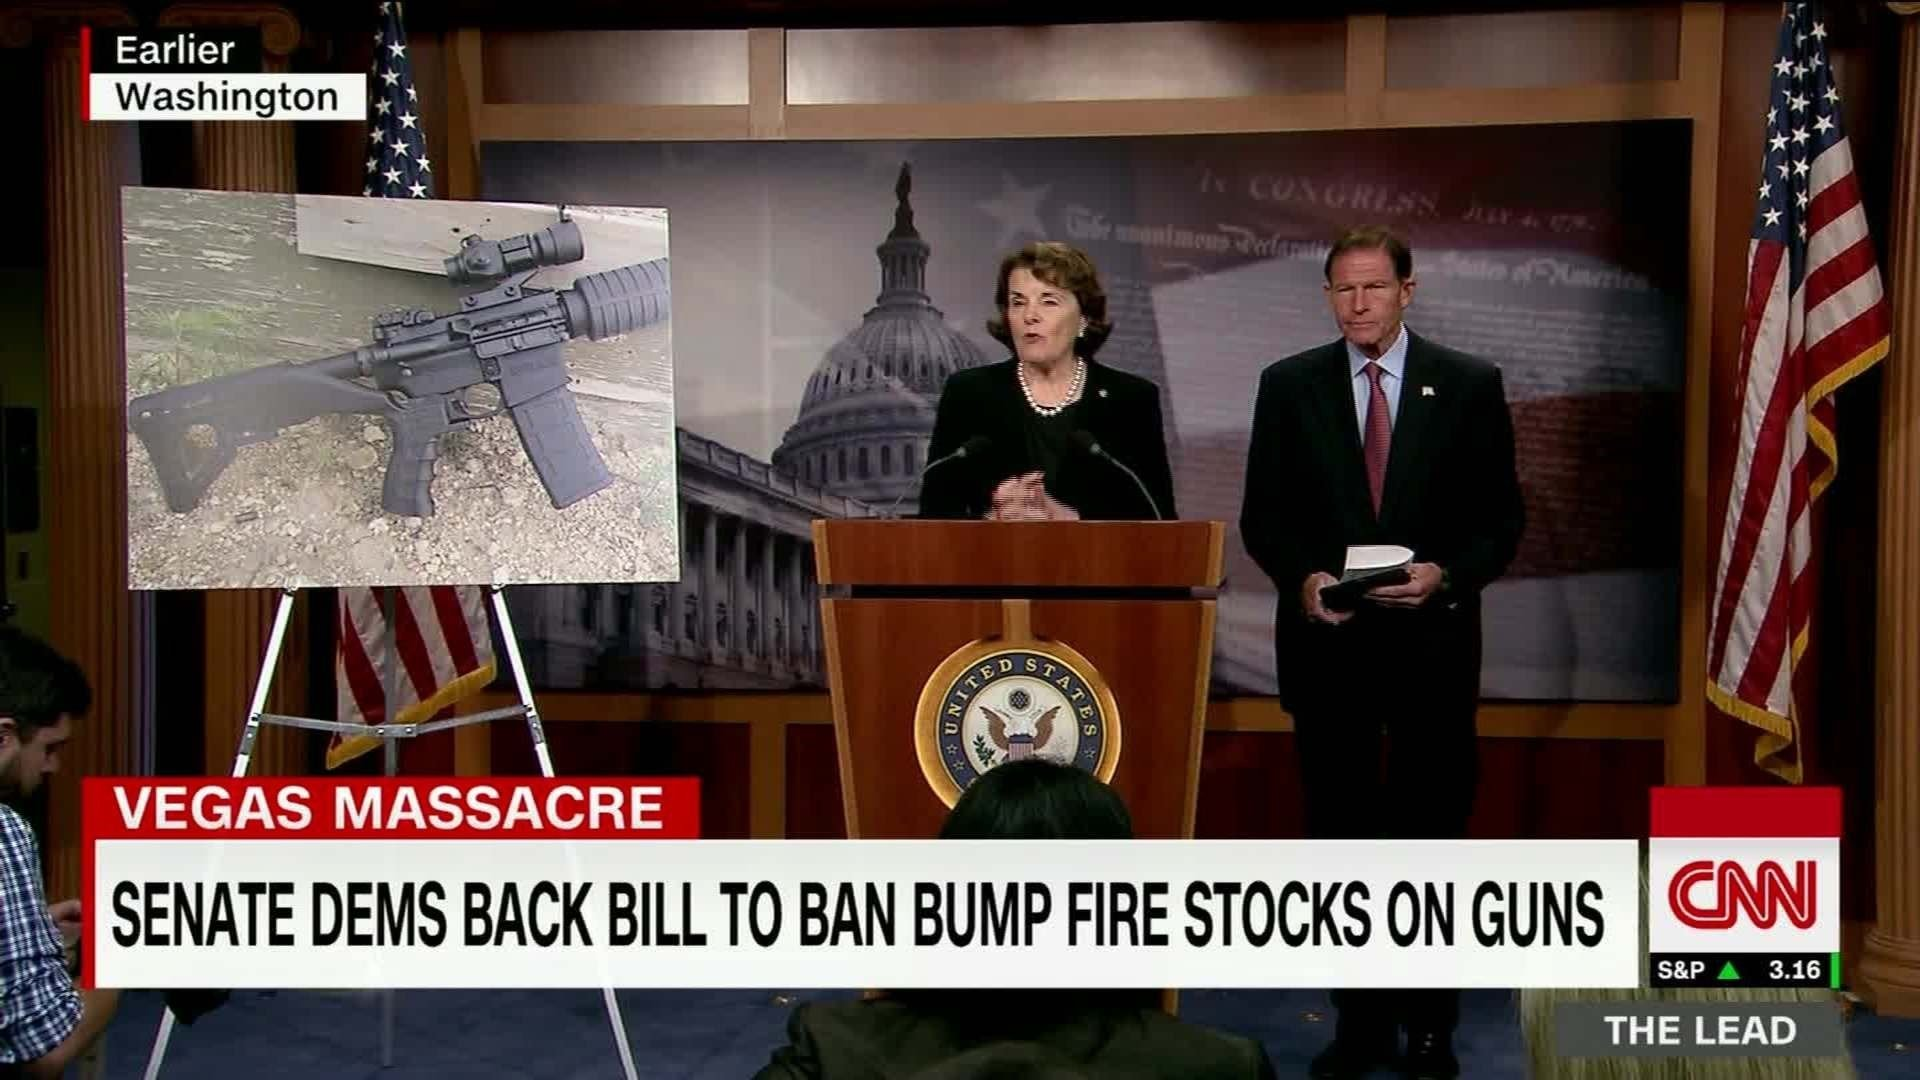 Common sense gun control: Bump off bump stocks